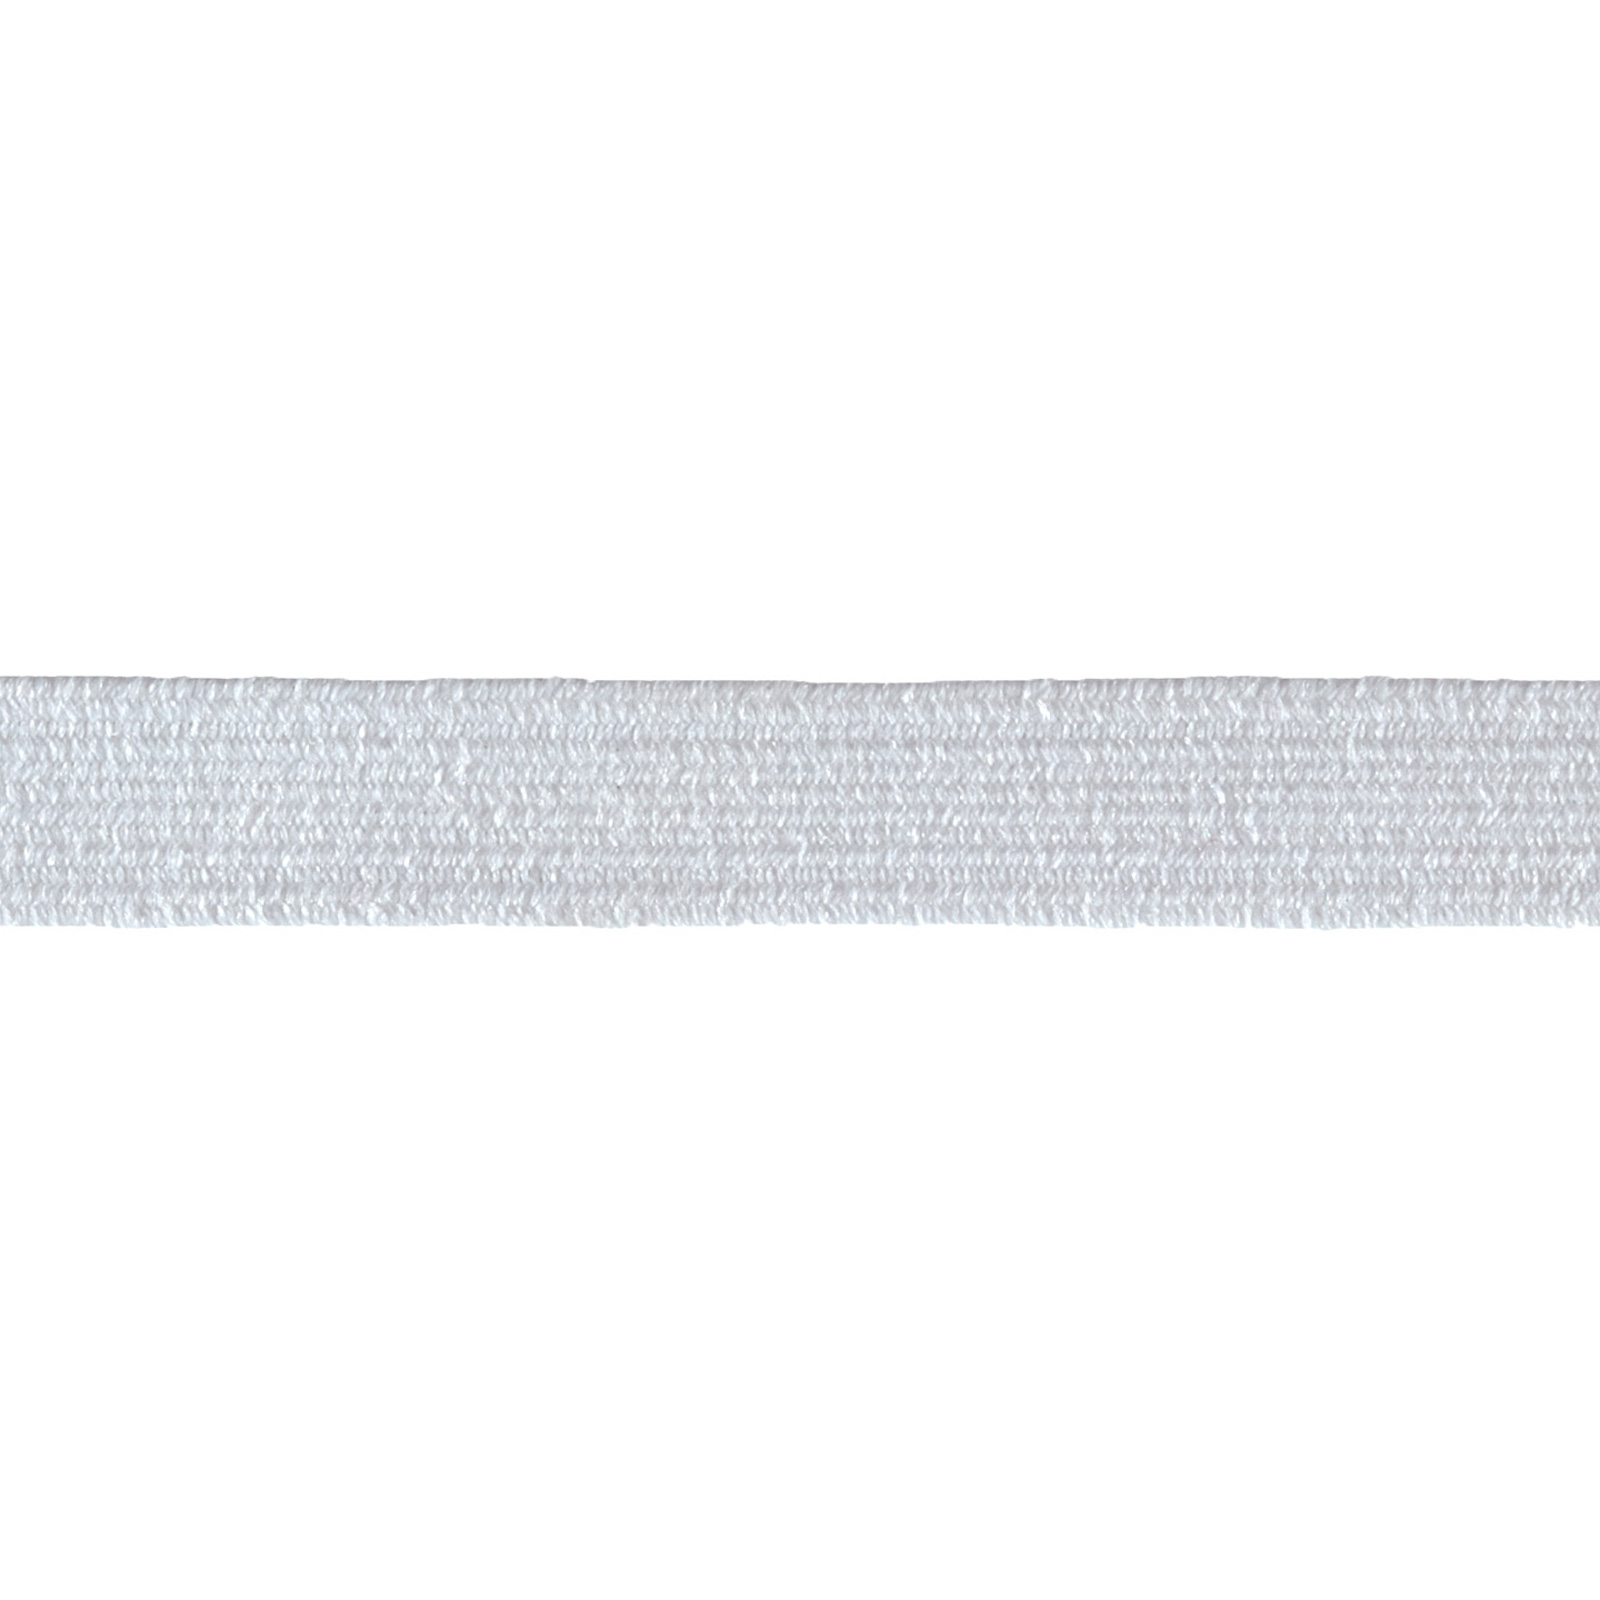 3/8'' Braided Elastic White